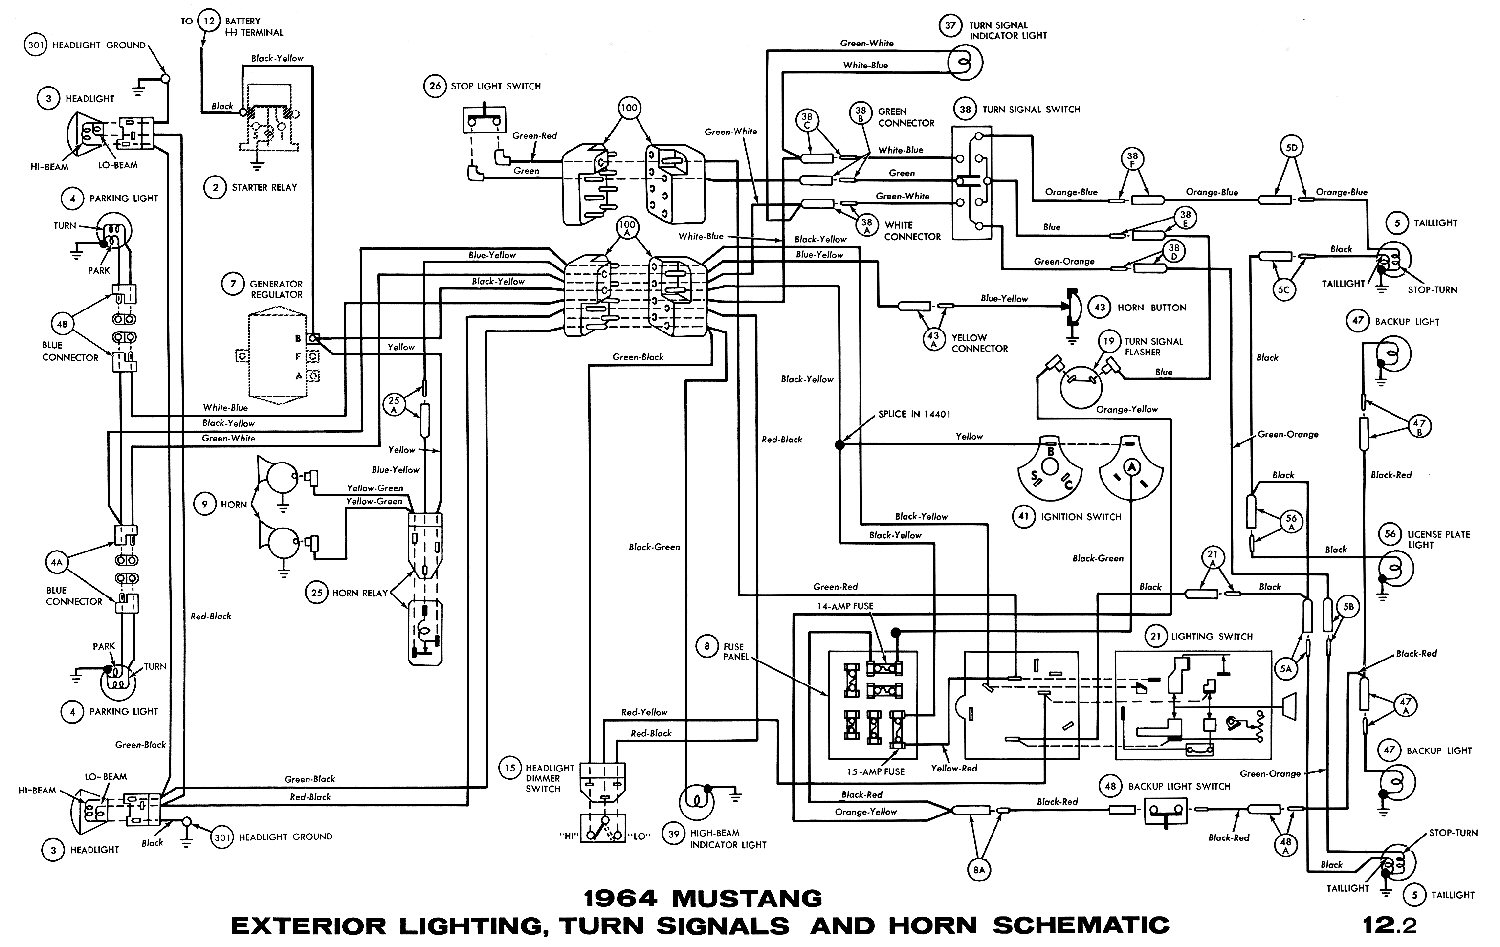 1964i 1964 mustang wiring diagrams average joe restoration 1970 mustang wiring diagram at soozxer.org